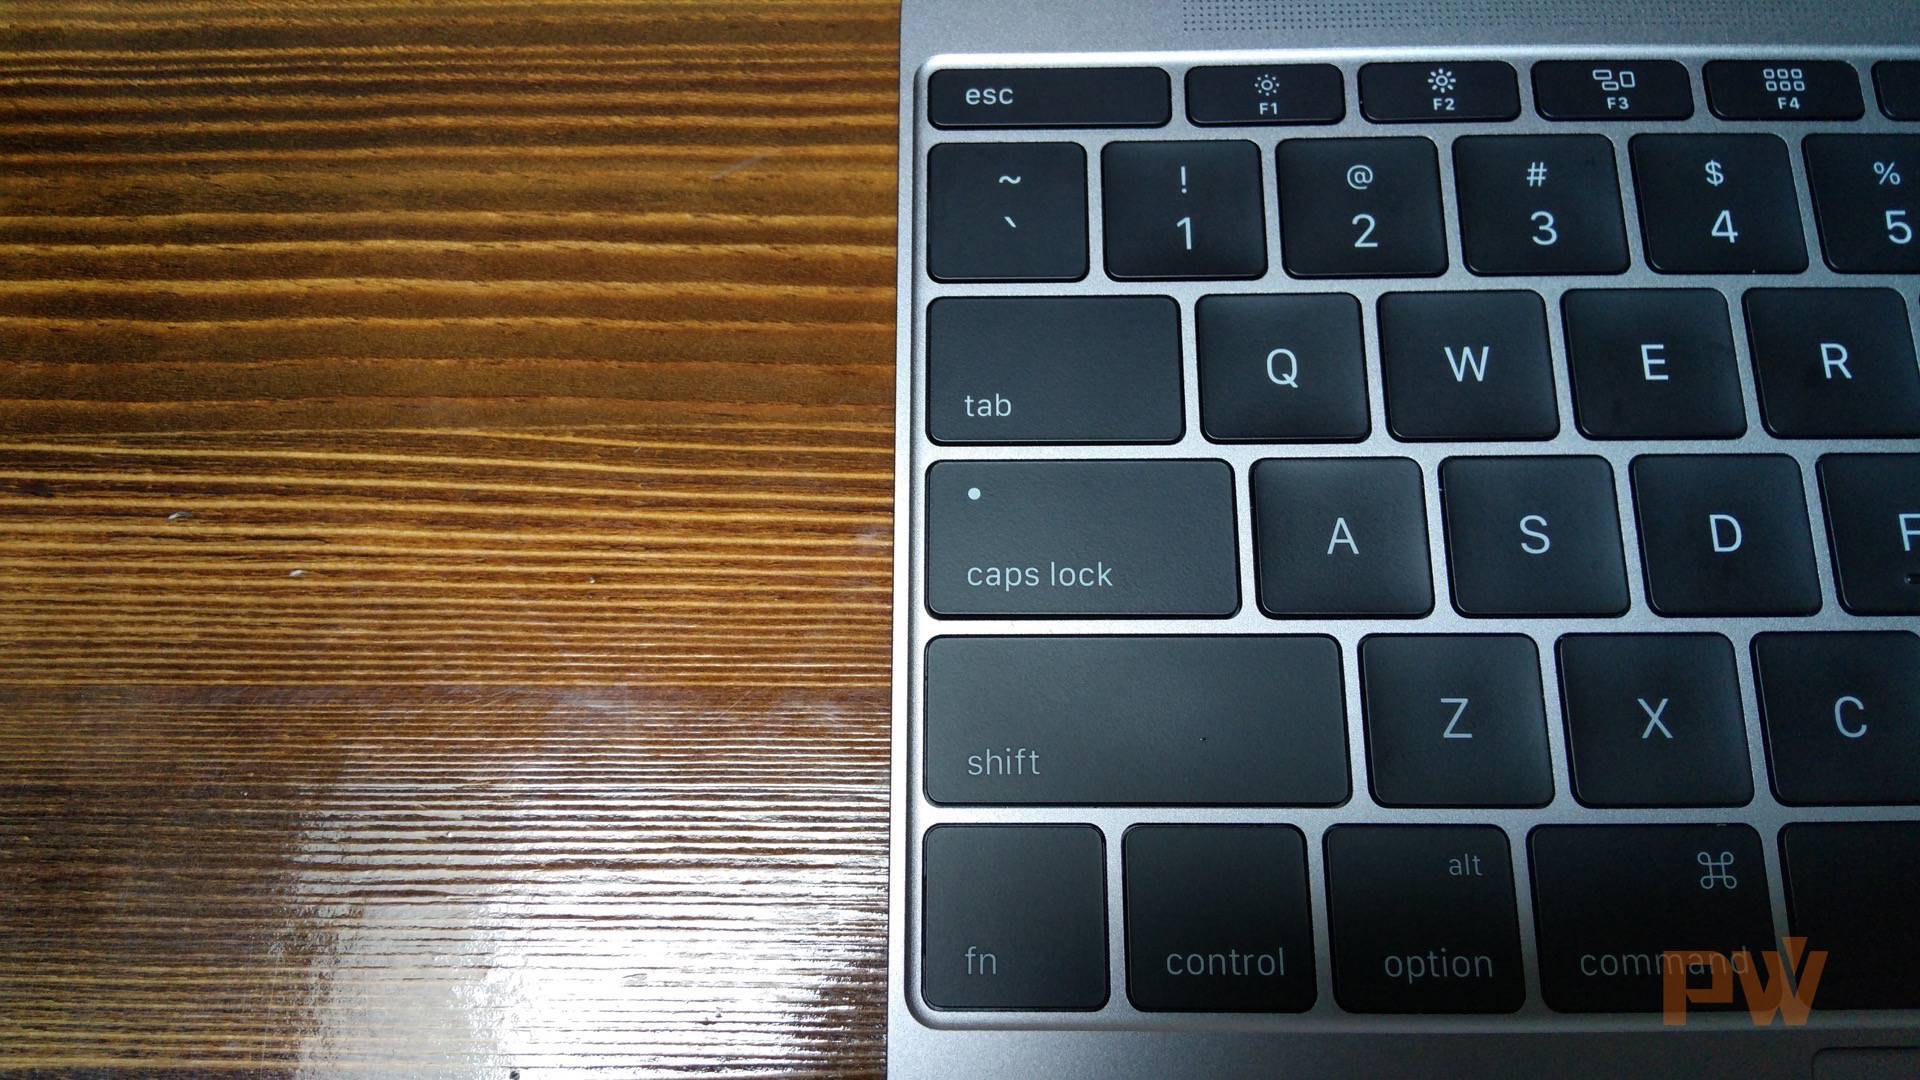 macbook-thin-keyboard-frame